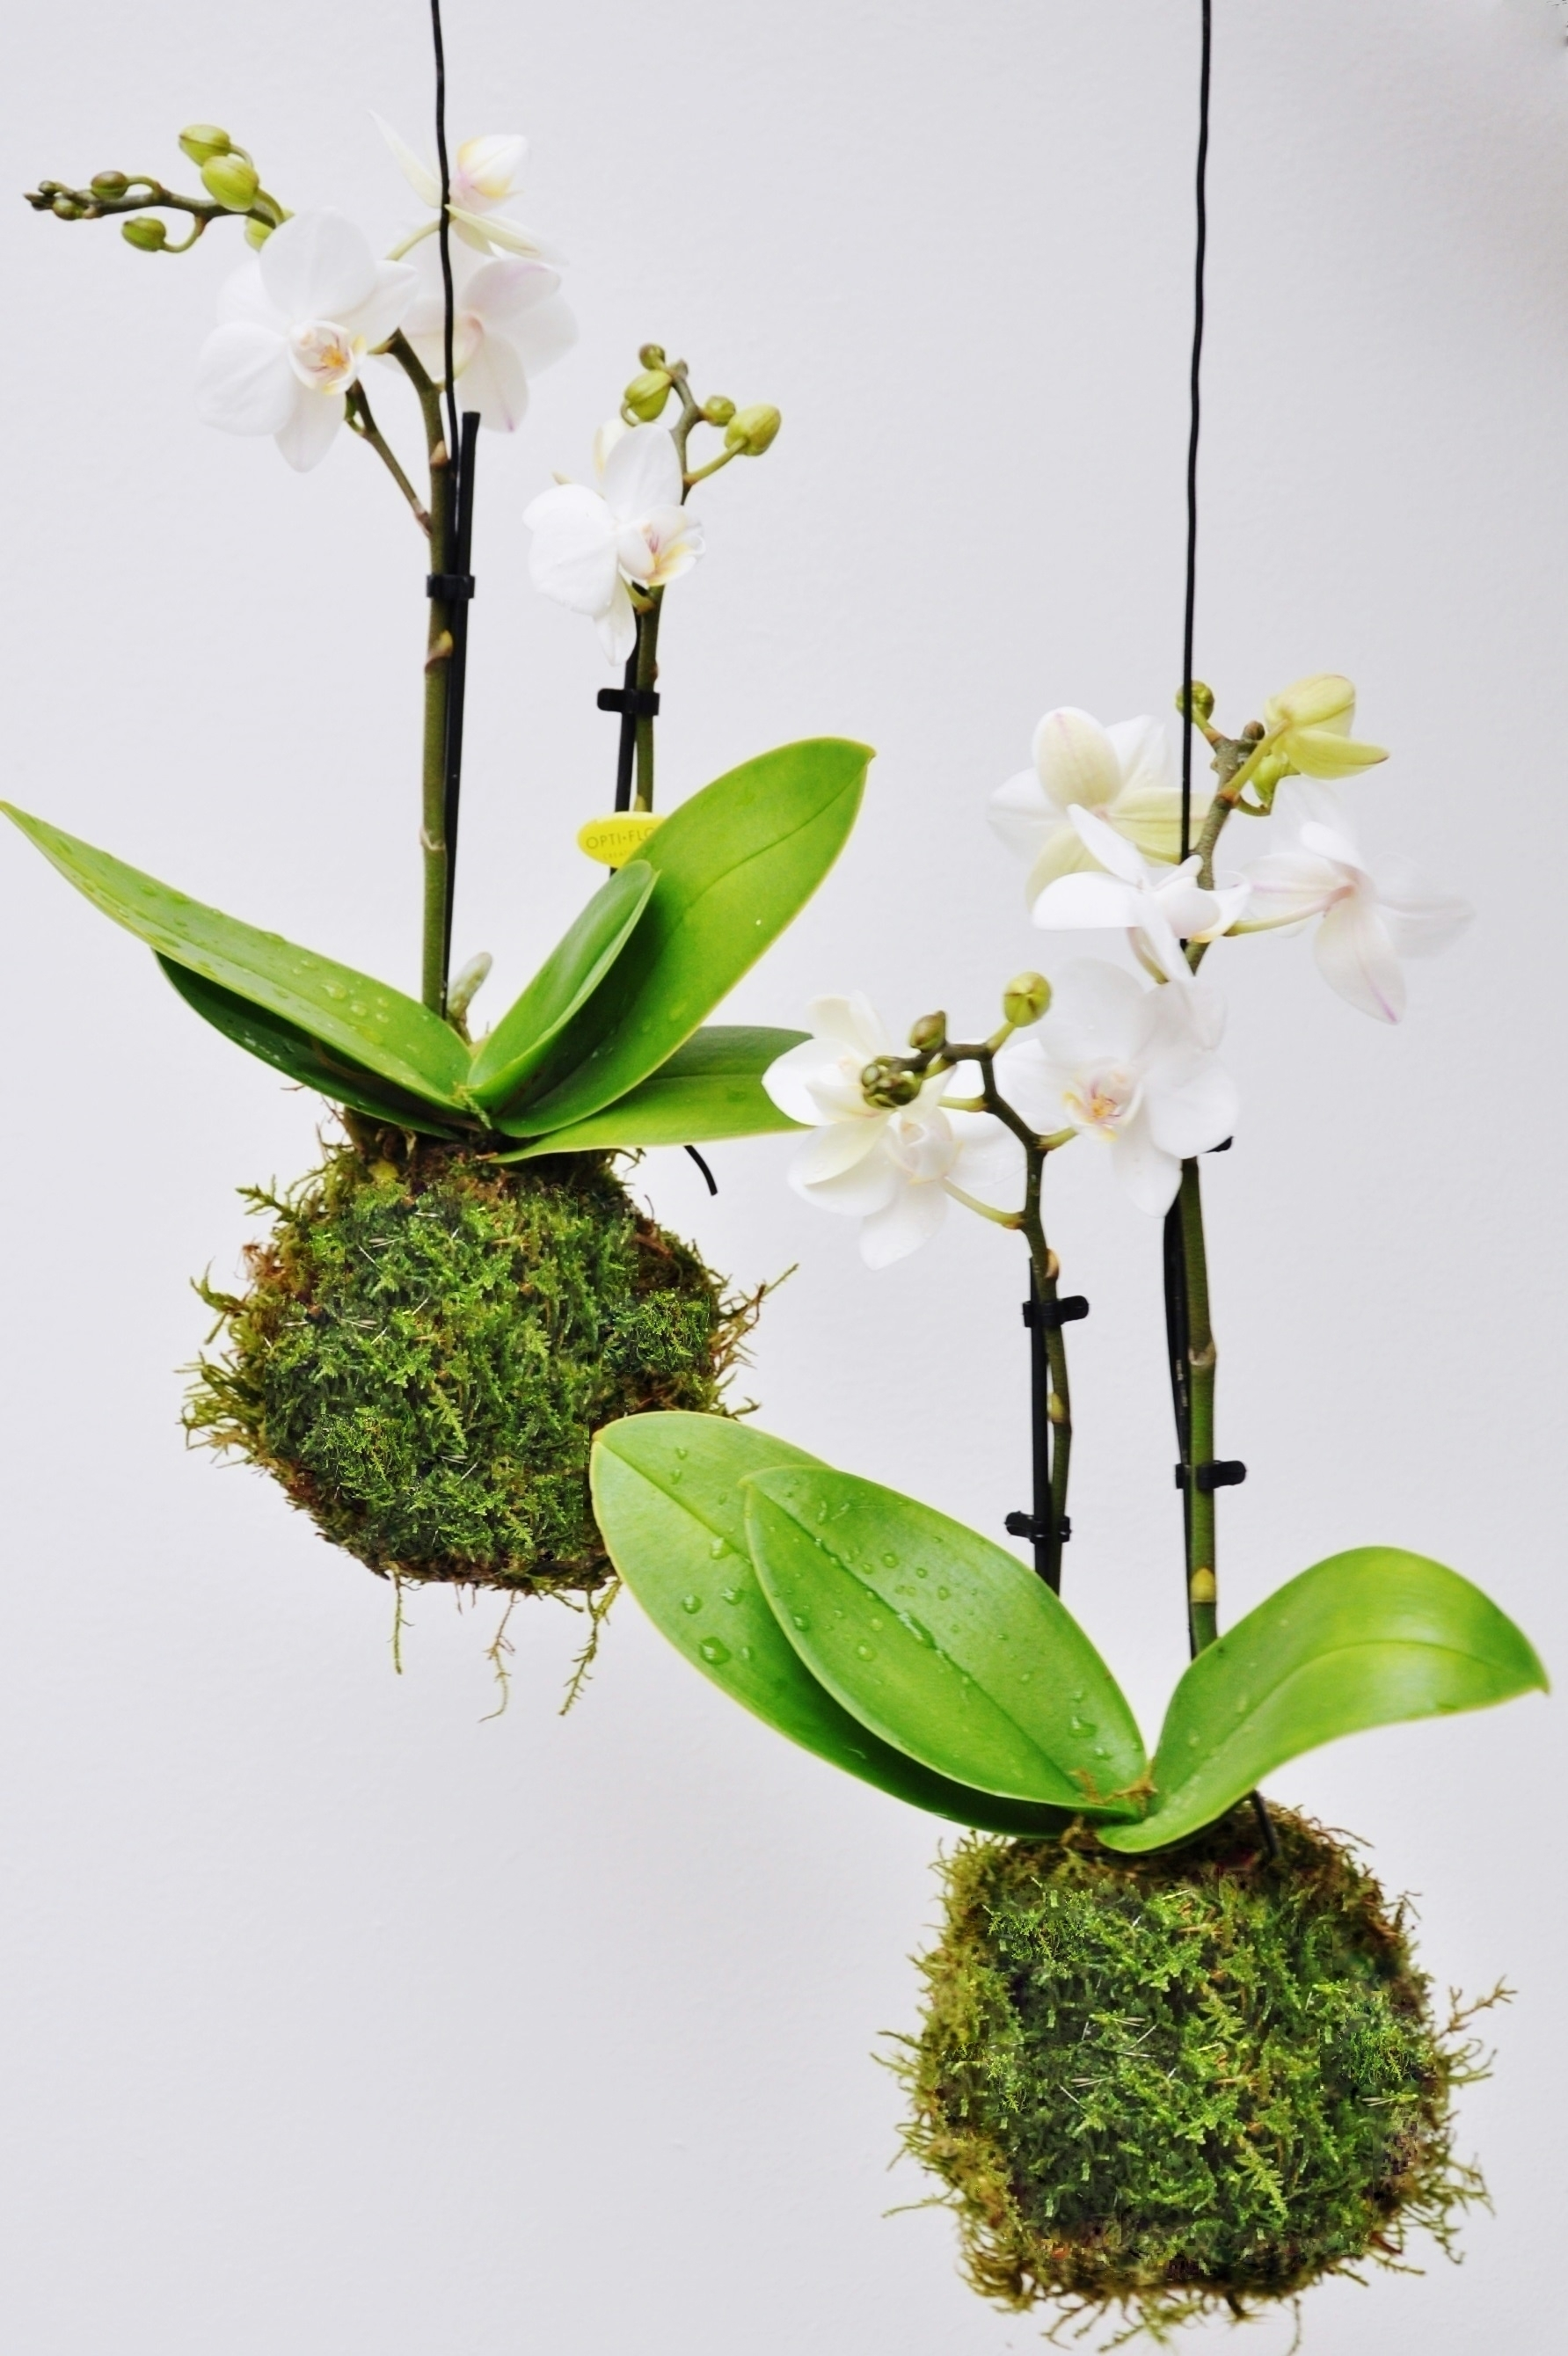 kokedama moosball wei e orchidee kokedamas pflanzen der palmenmann. Black Bedroom Furniture Sets. Home Design Ideas